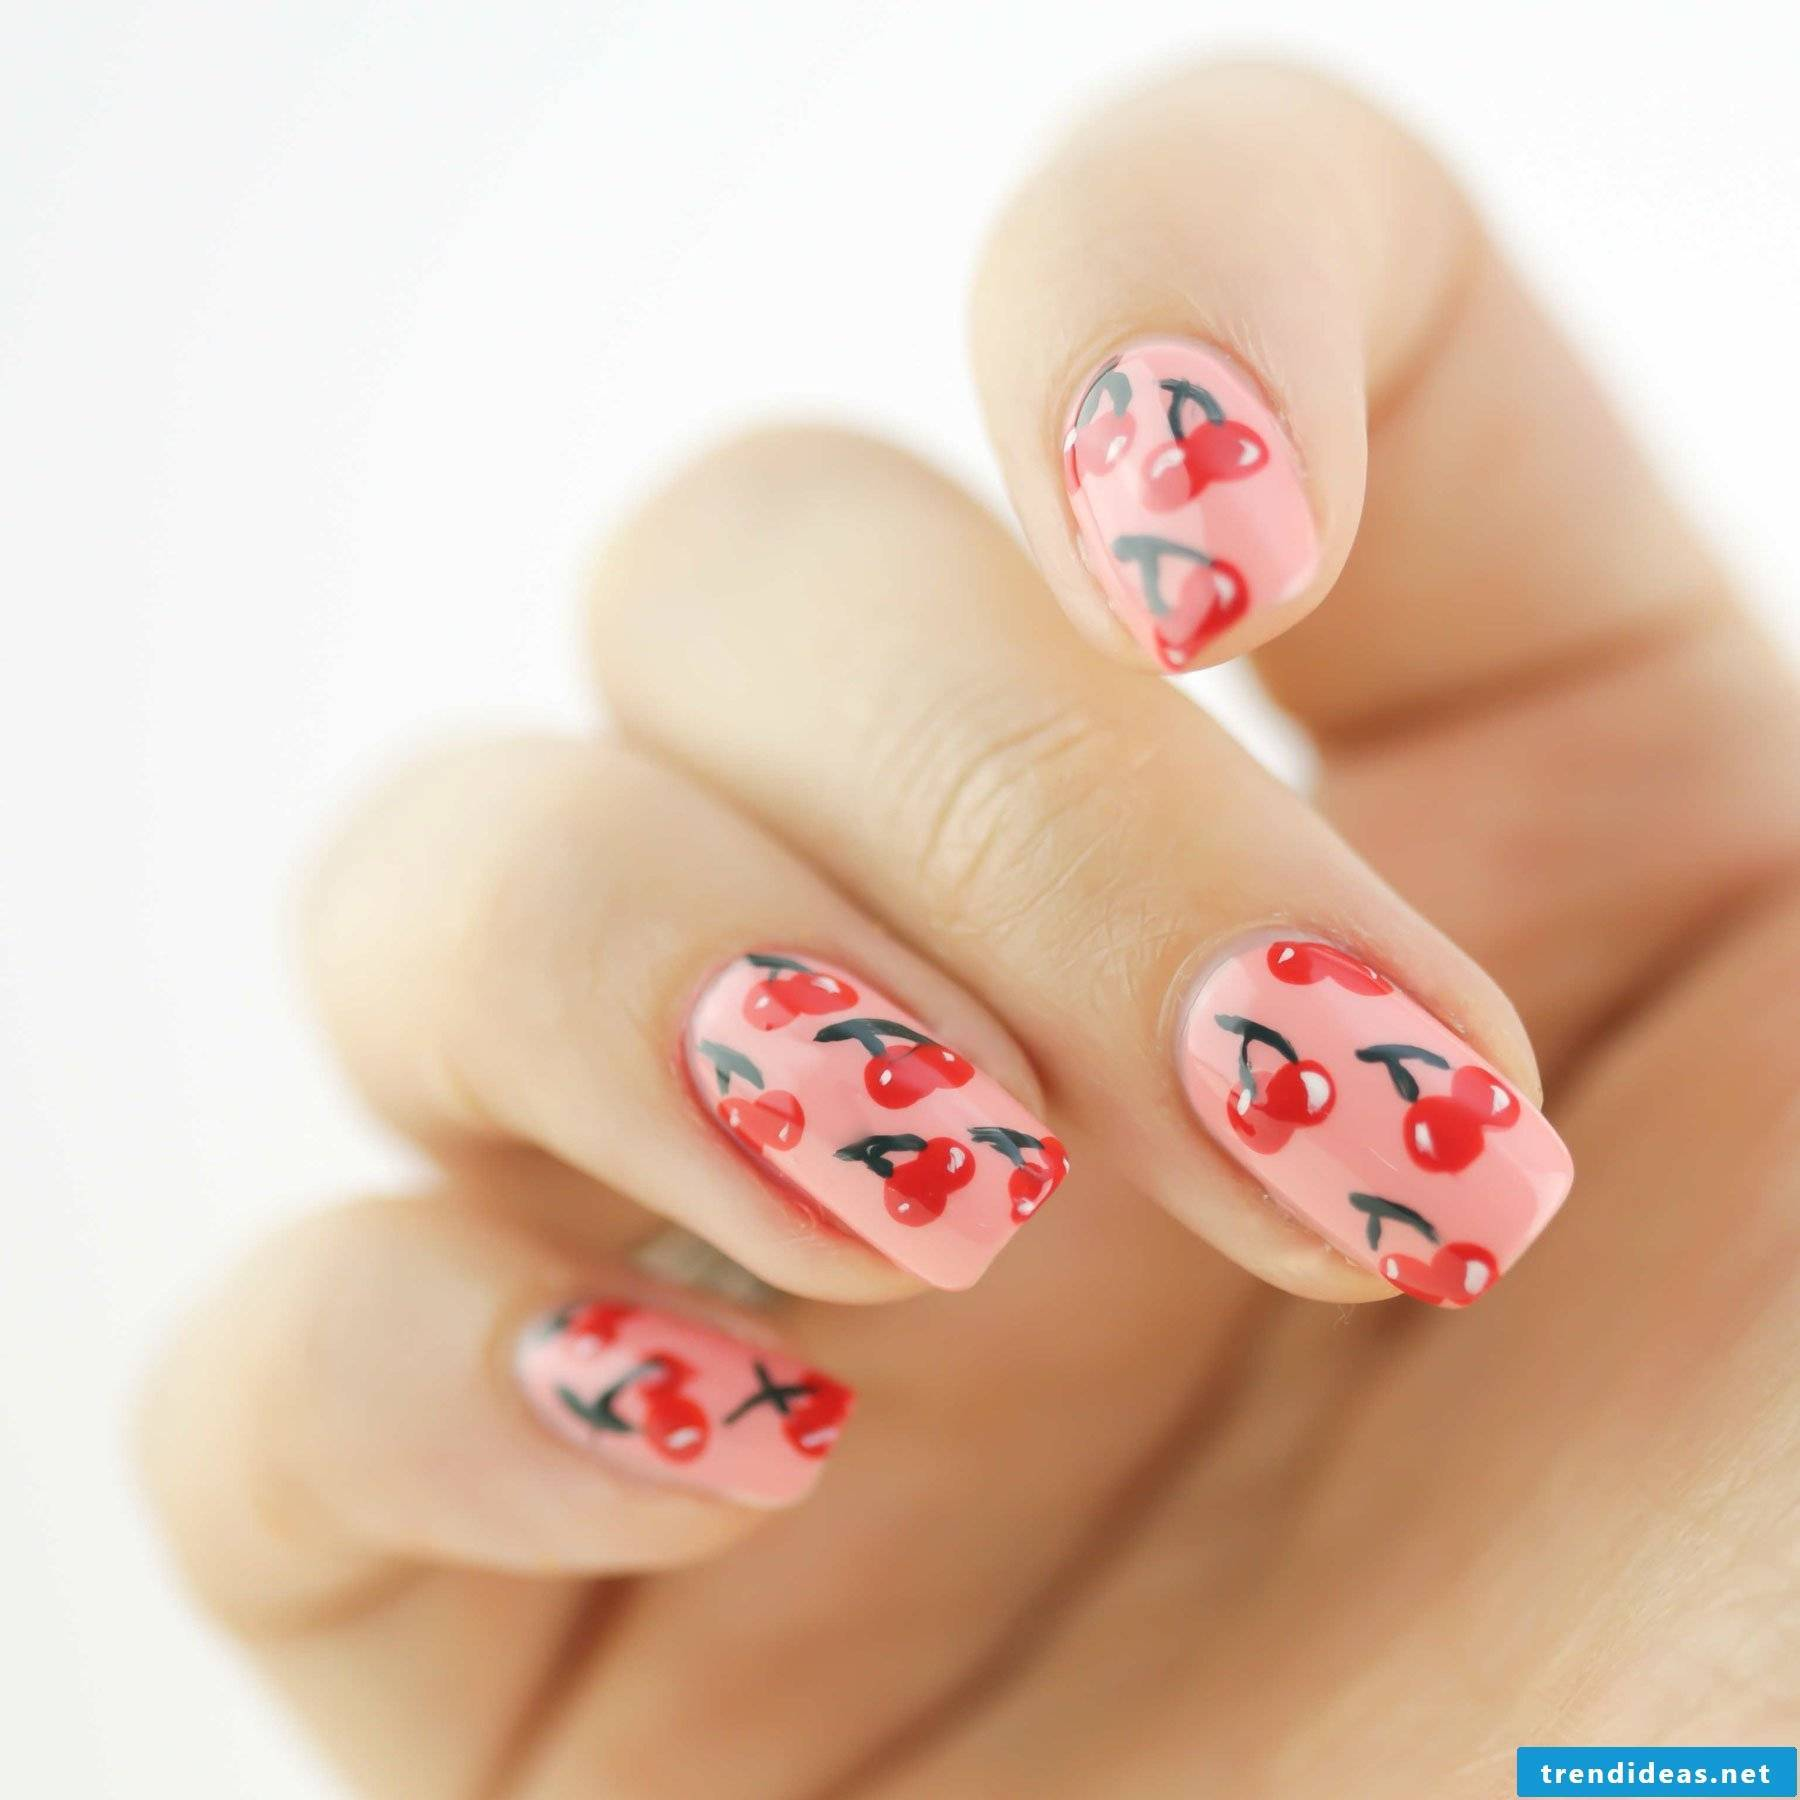 Beautiful nail design with cherries, brings mood every time